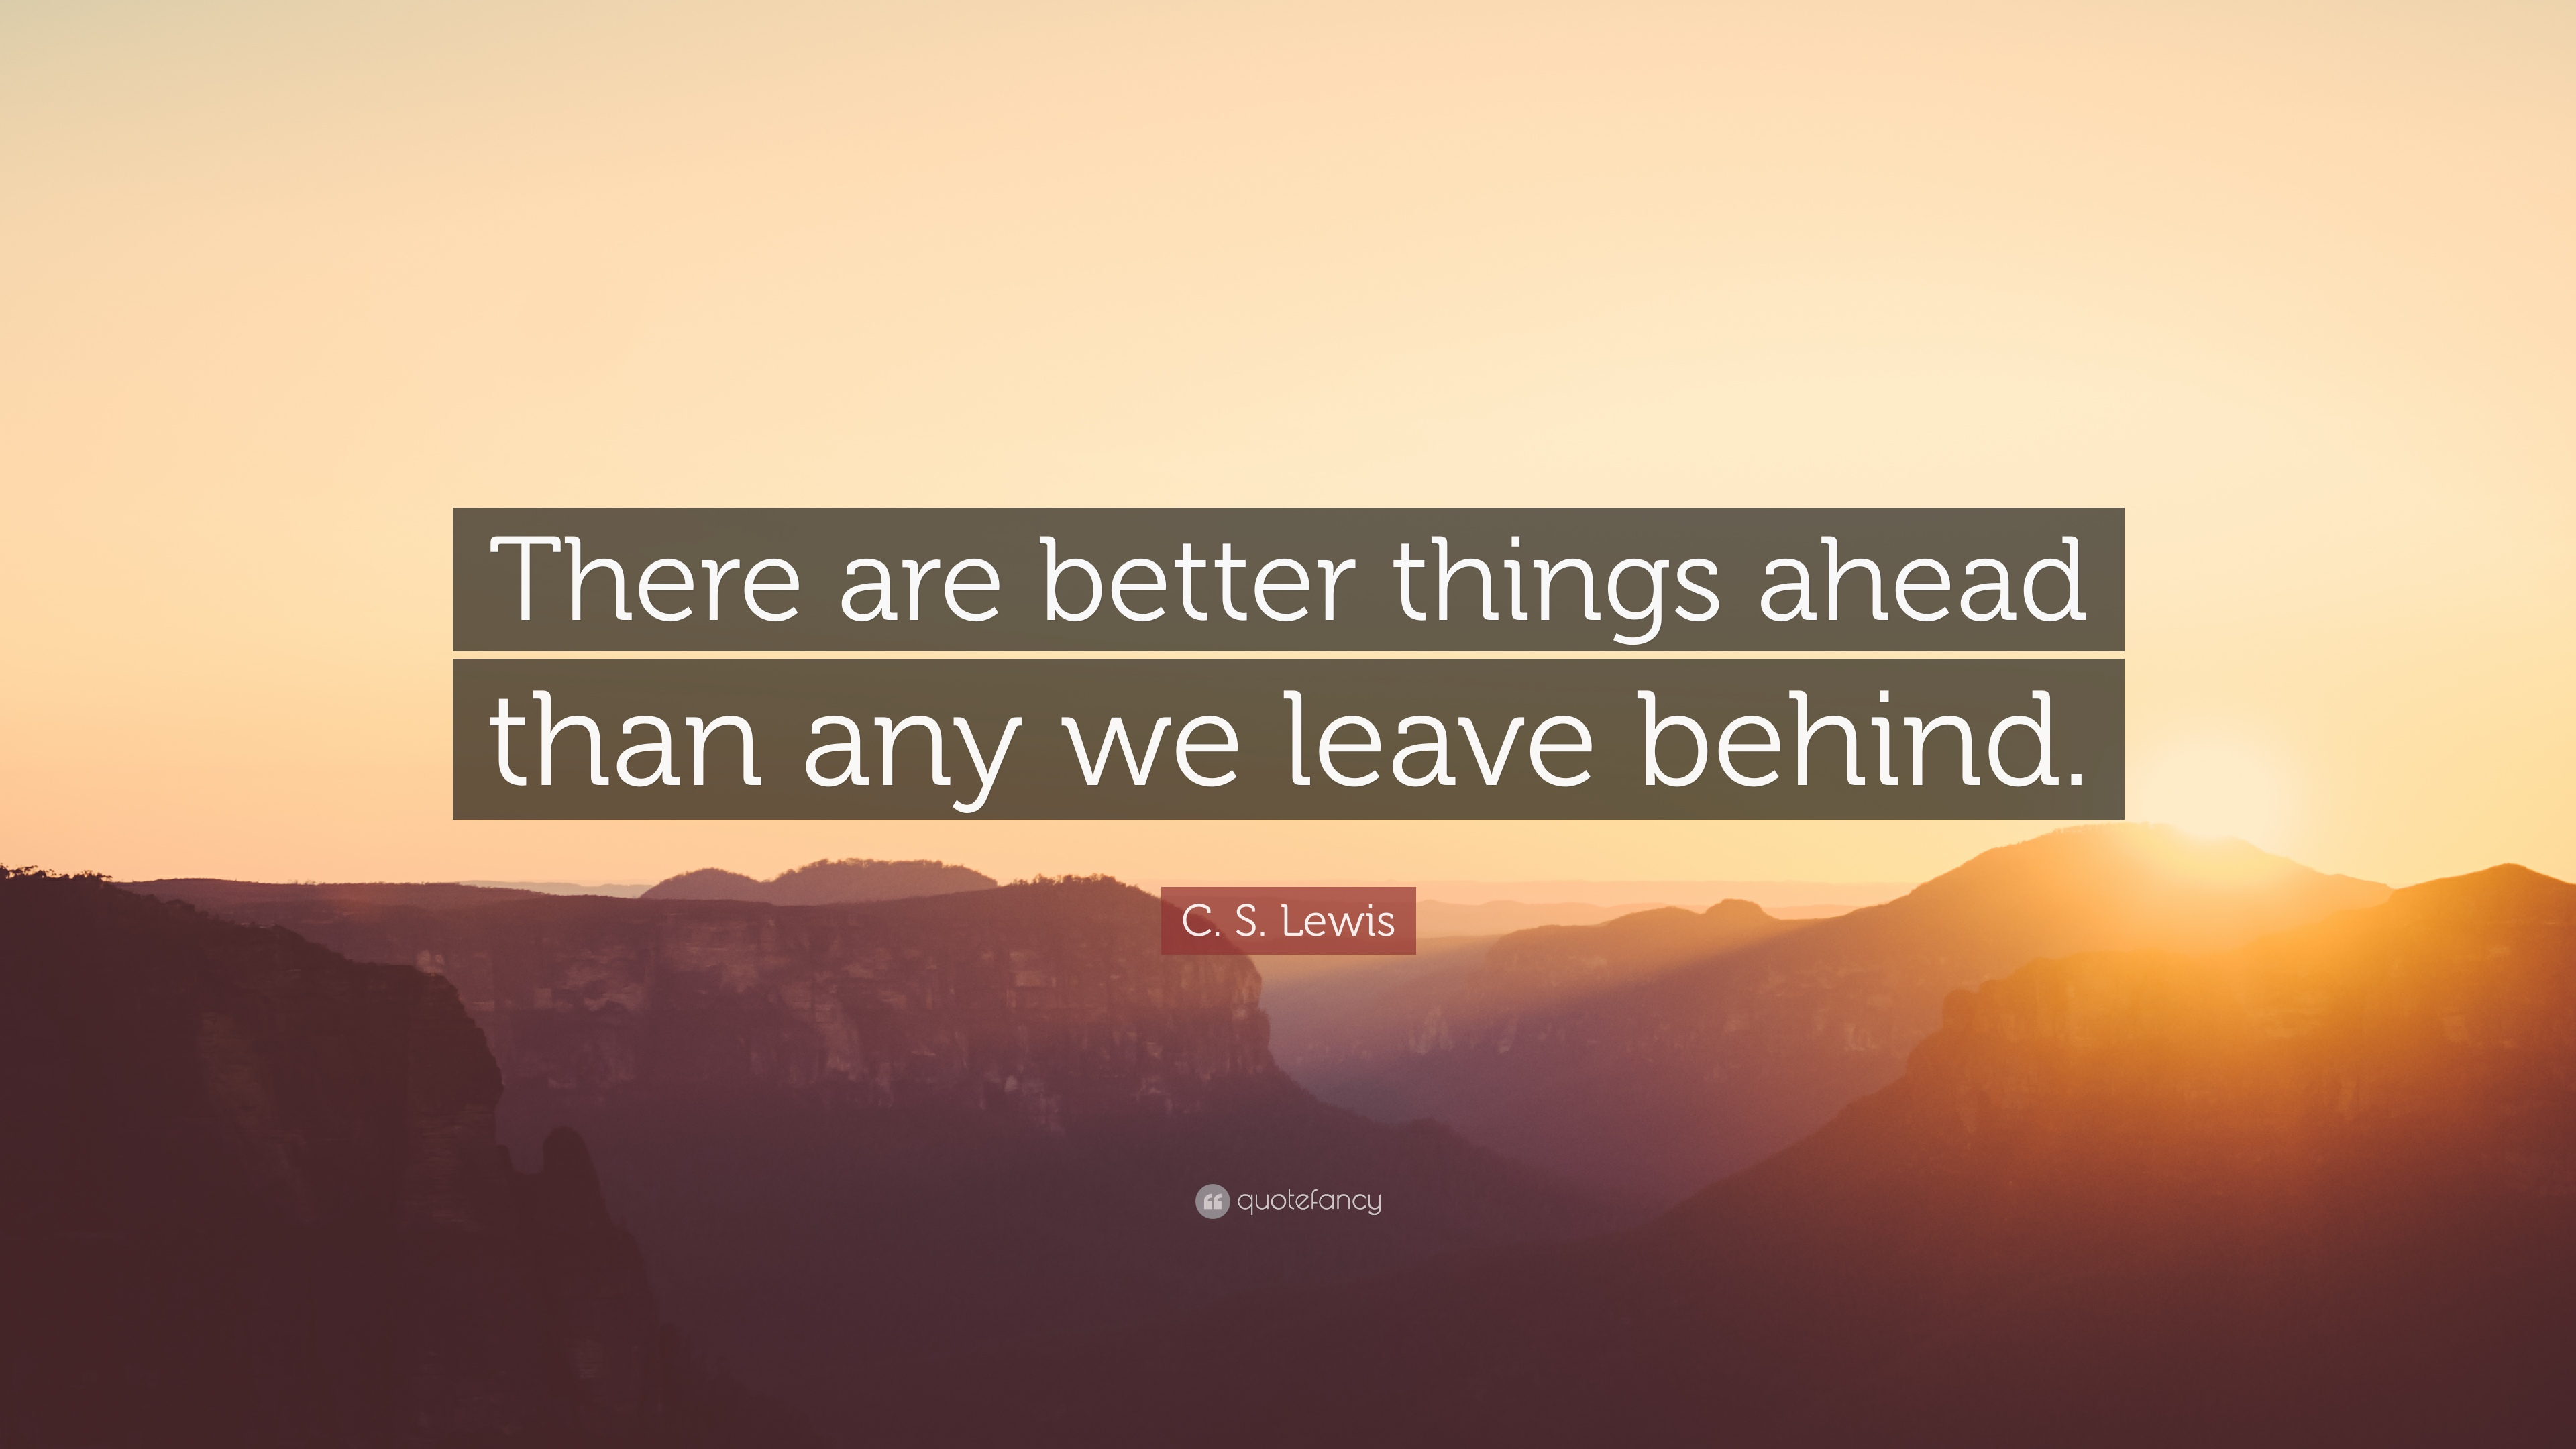 C S Lewis Quote There Are Better Things Ahead Than Any We Leave